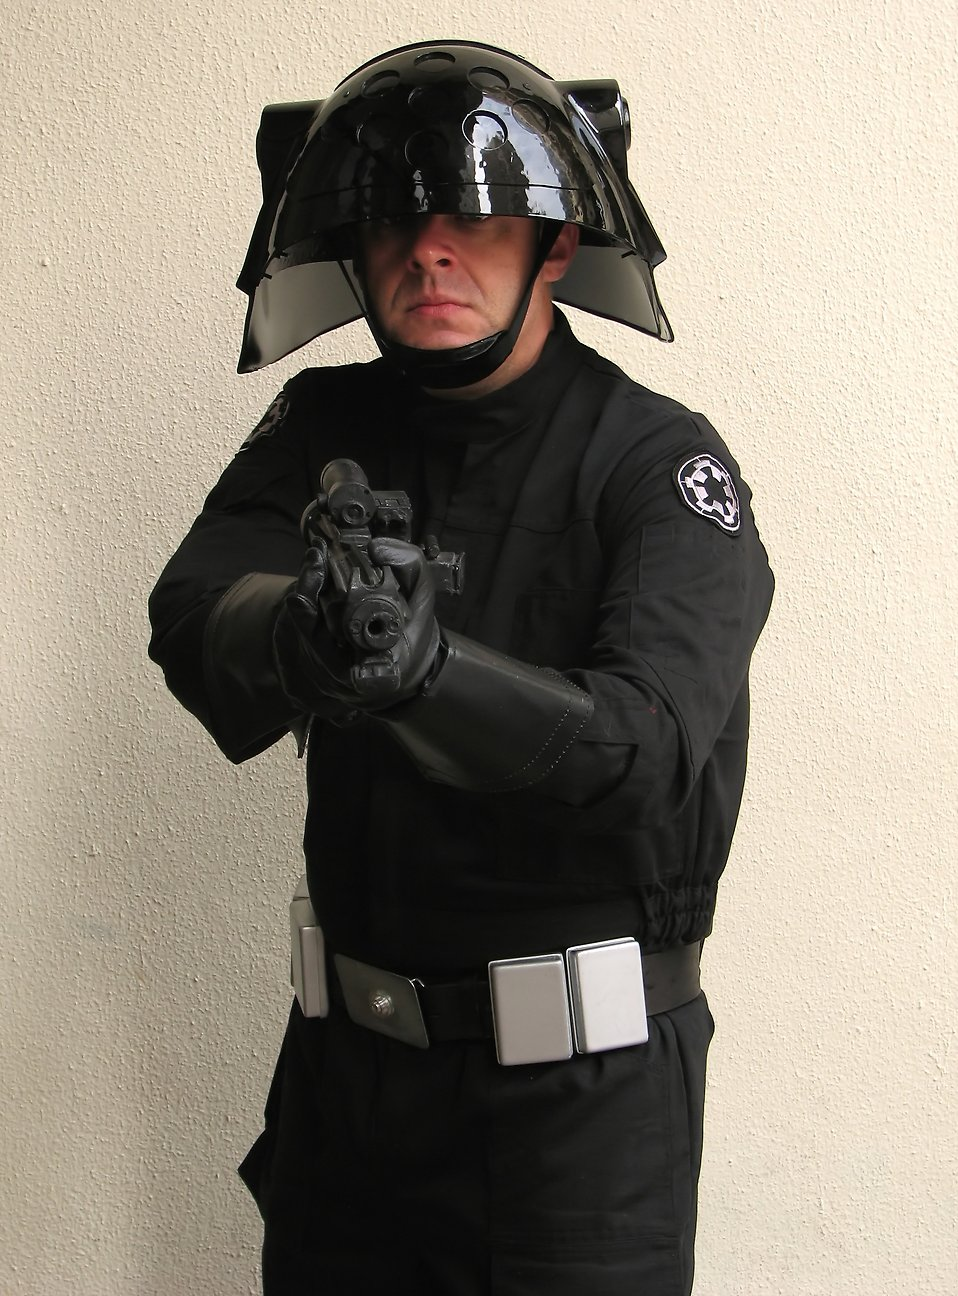 A man in an Imperial costume at Dragoncon 2009 in Atlanta, Georgia : Free Stock Photo